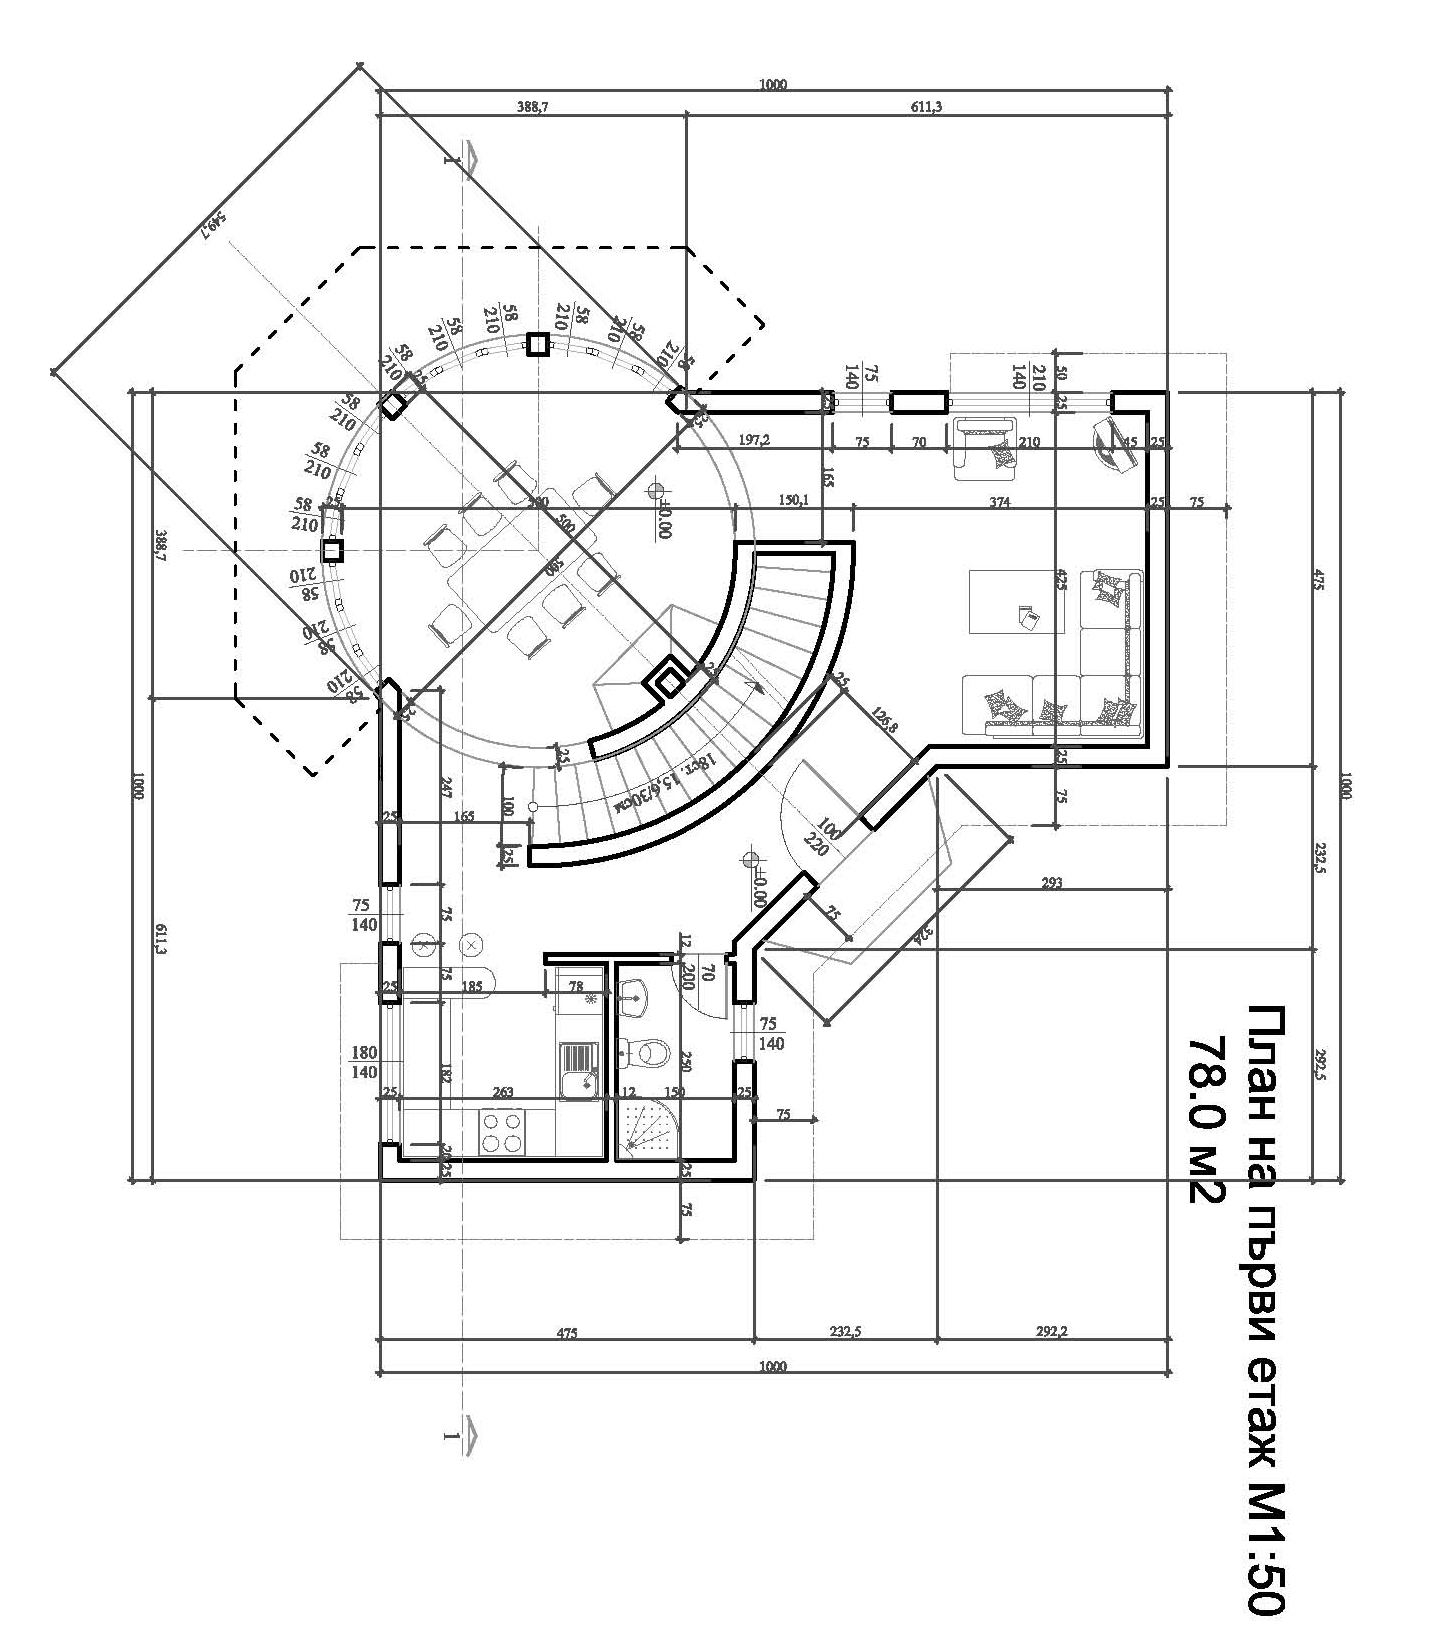 2 bedroom pool house floor plans small 2br house huge bedroom house with pool and magnificent sea view